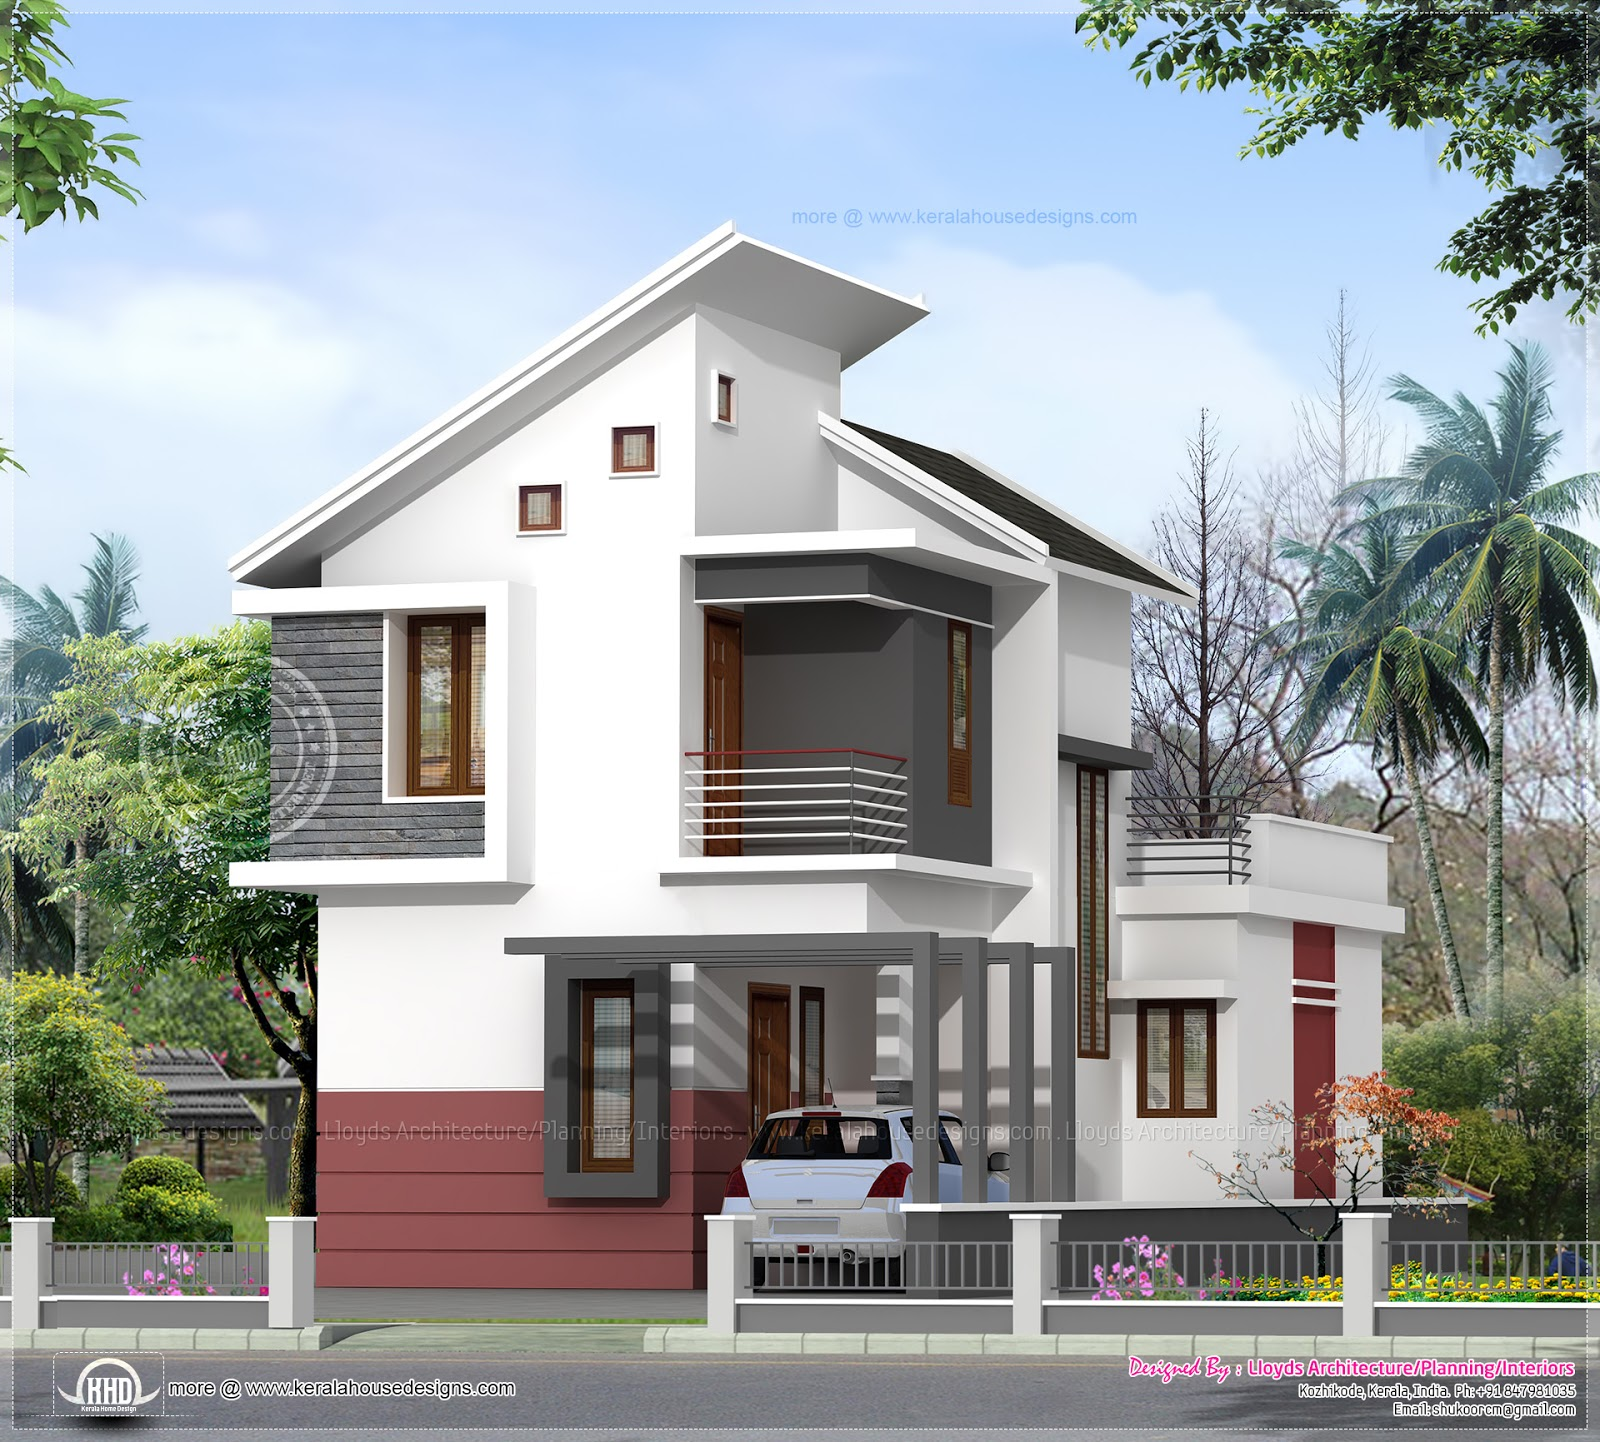 1197 sq ft 3 bedroom villa in 3 cents plot kerala home for Petite villa design